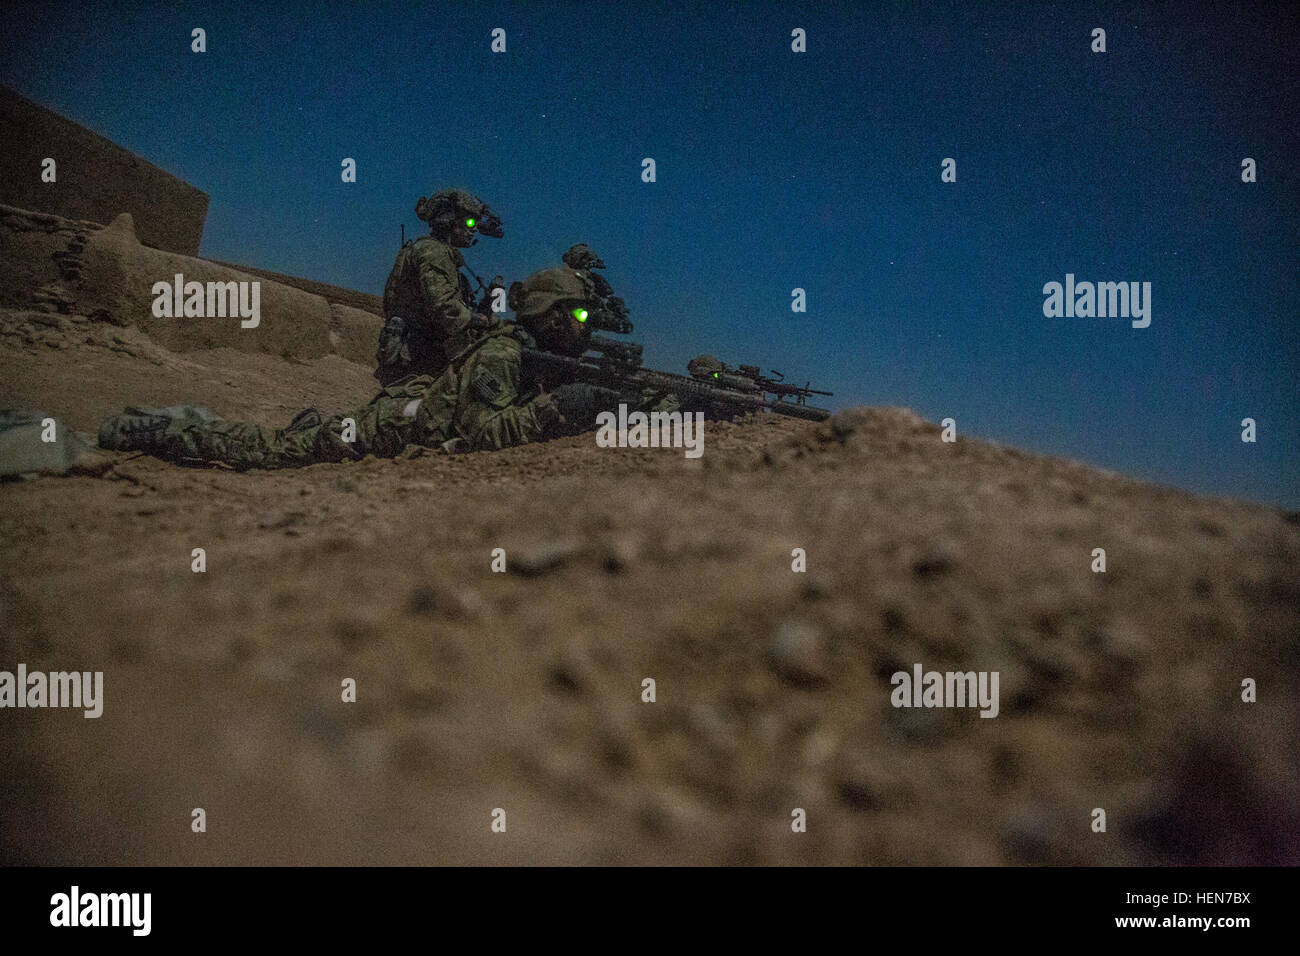 http://c7.alamy.com/comp/HEN7BX/coalition-force-members-rear-security-during-an-operation-in-helmand-HEN7BX.jpg